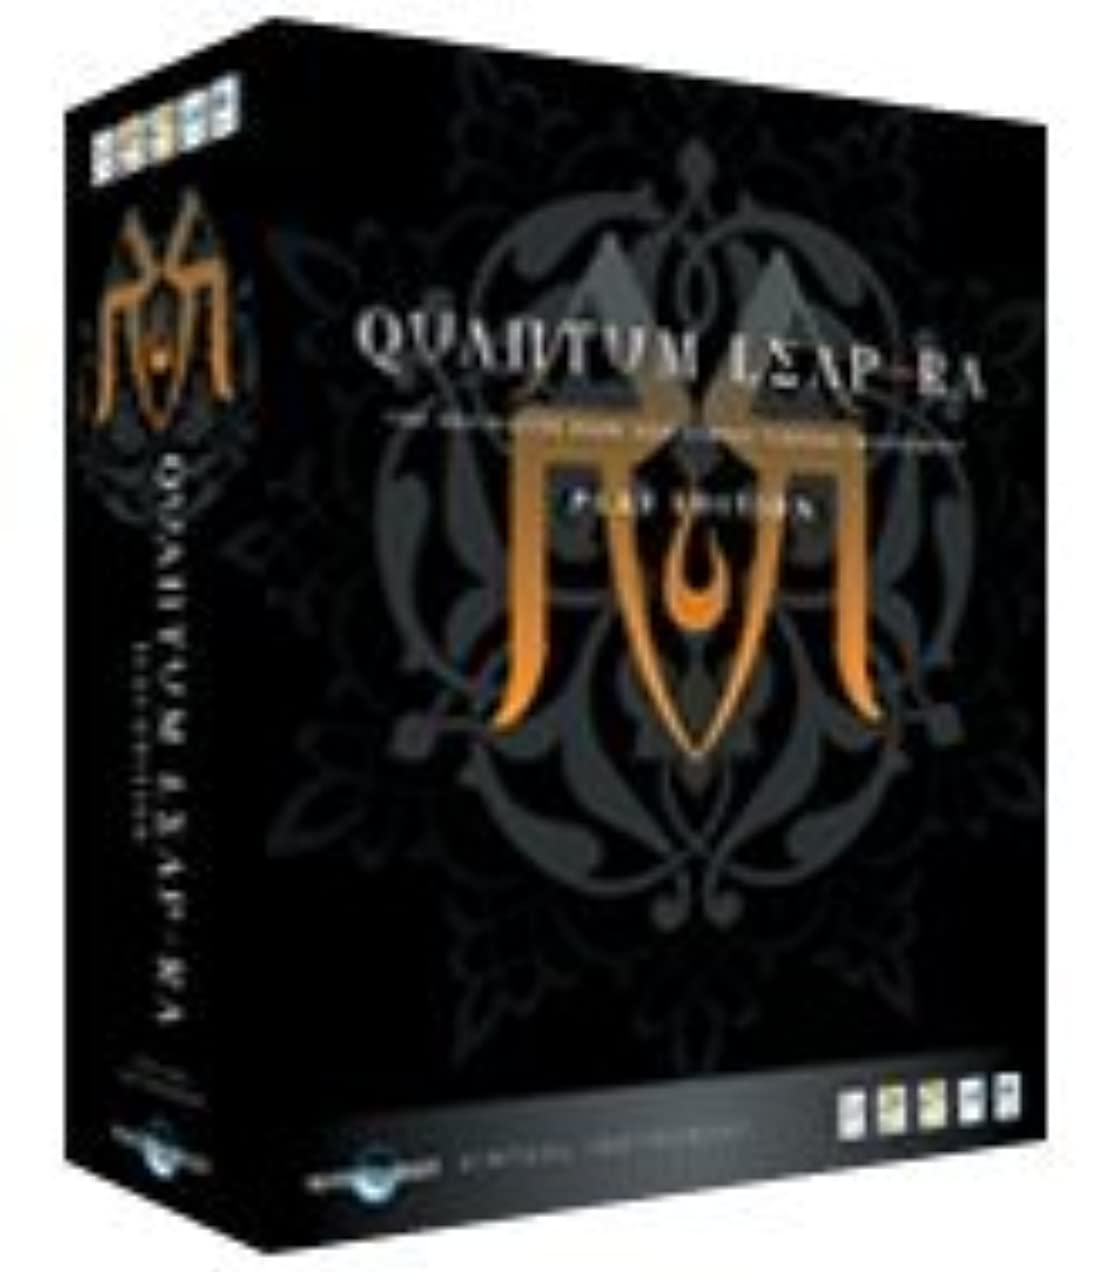 証明する消防士ハウジングEASTWEST Quantum Leap RA PLAY Edition